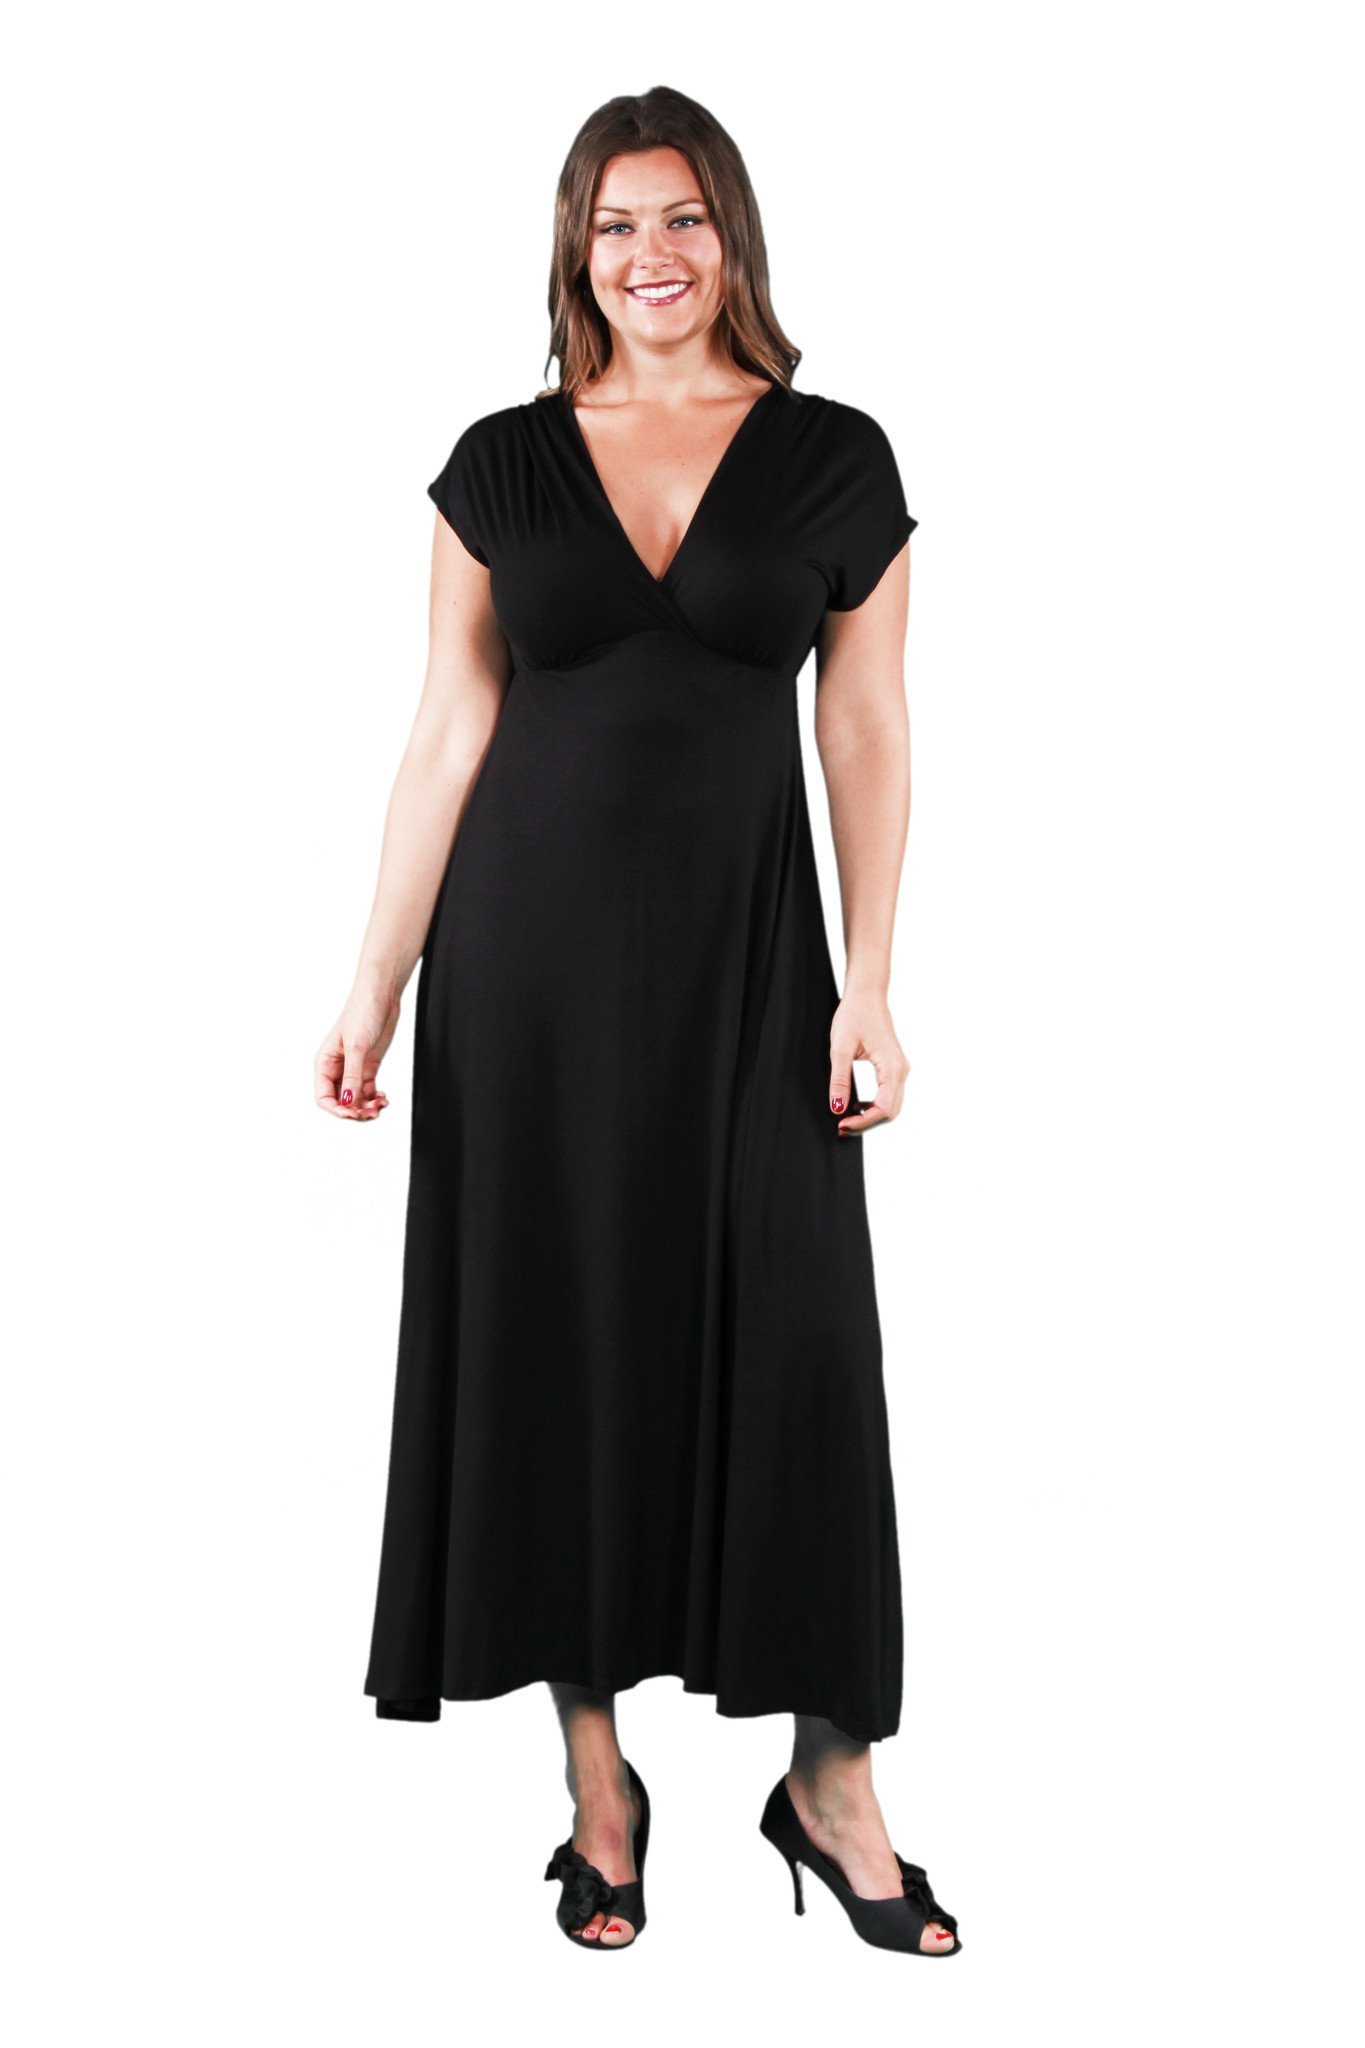 4d9d47bf0d4 24 7 Comfort Apparel - Women s Plus Faux Wrap Maxi Dress - Walmart.com